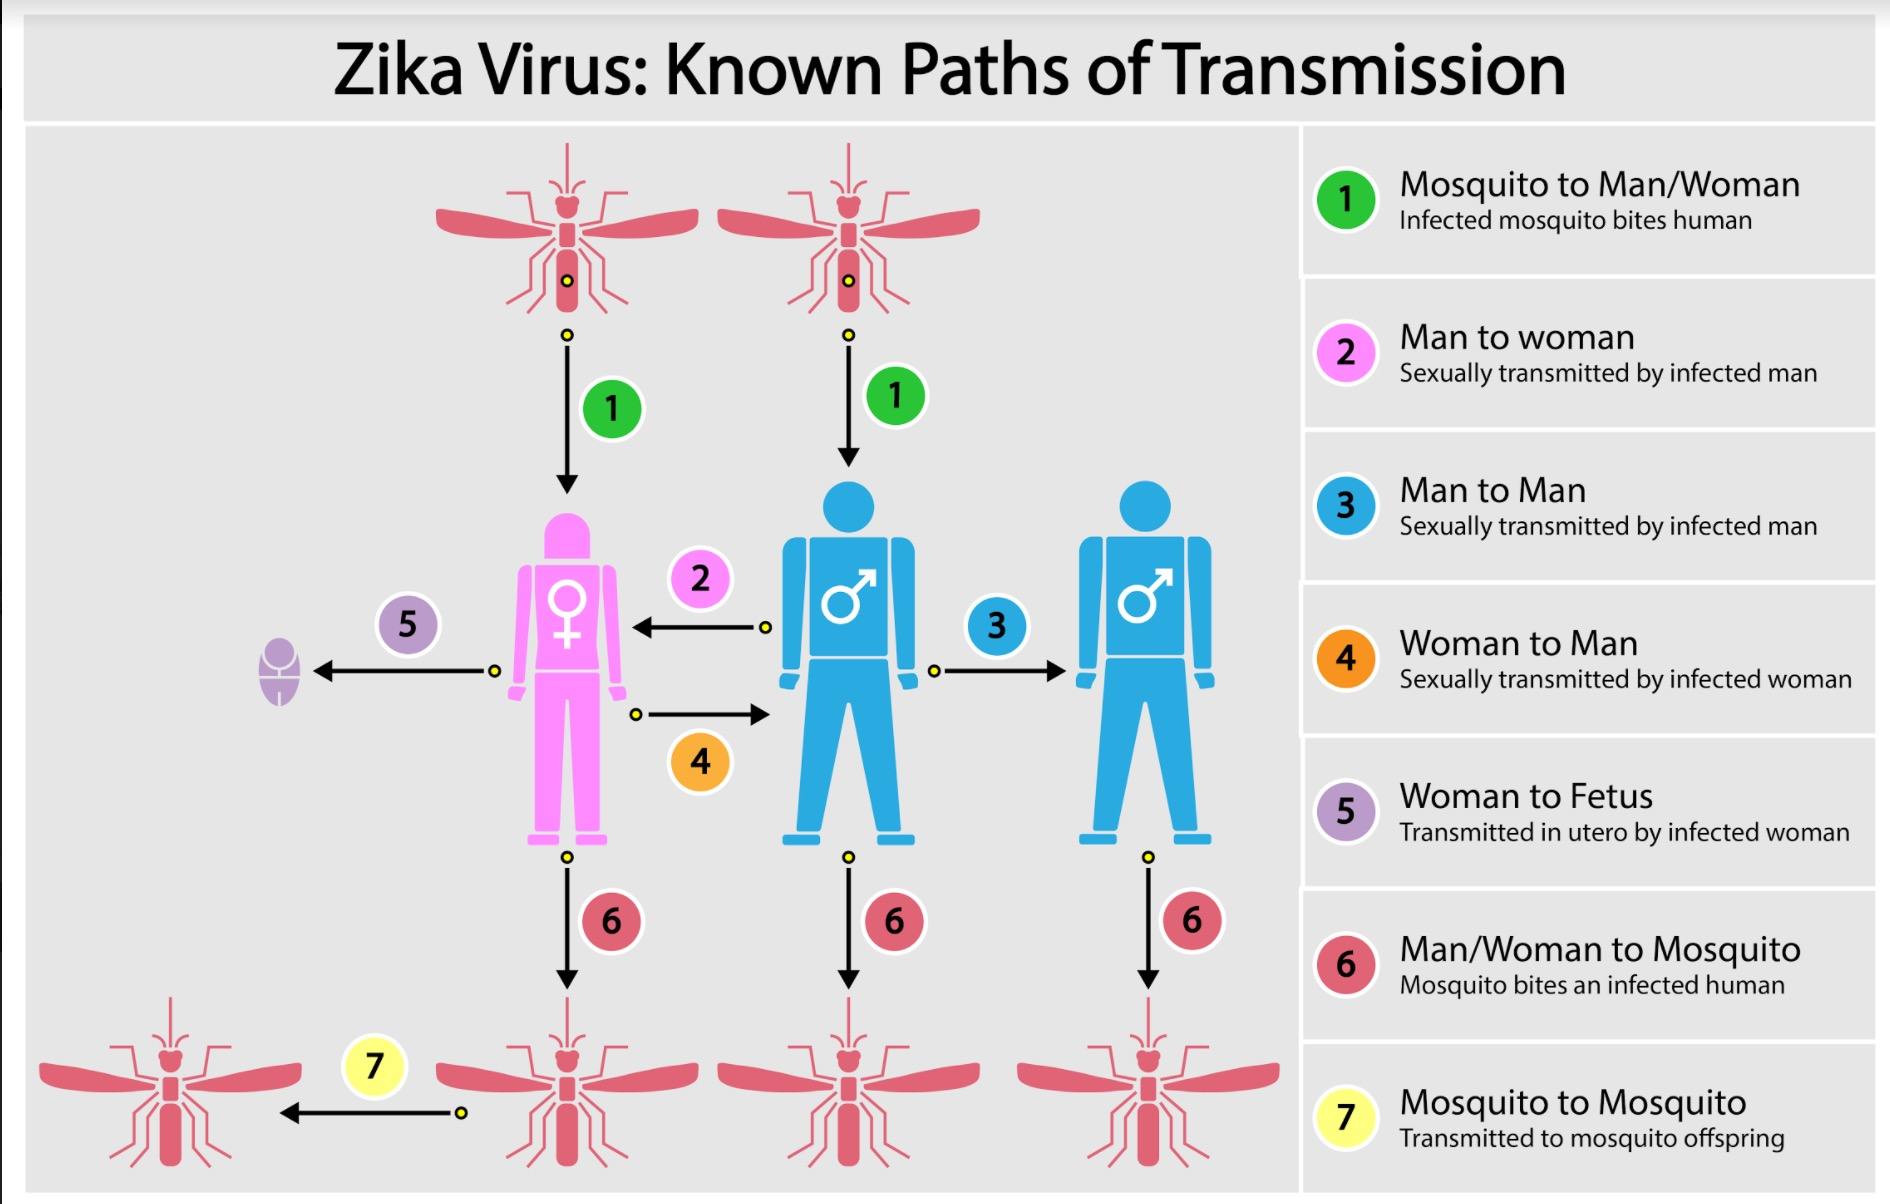 Sexually transmitted zika